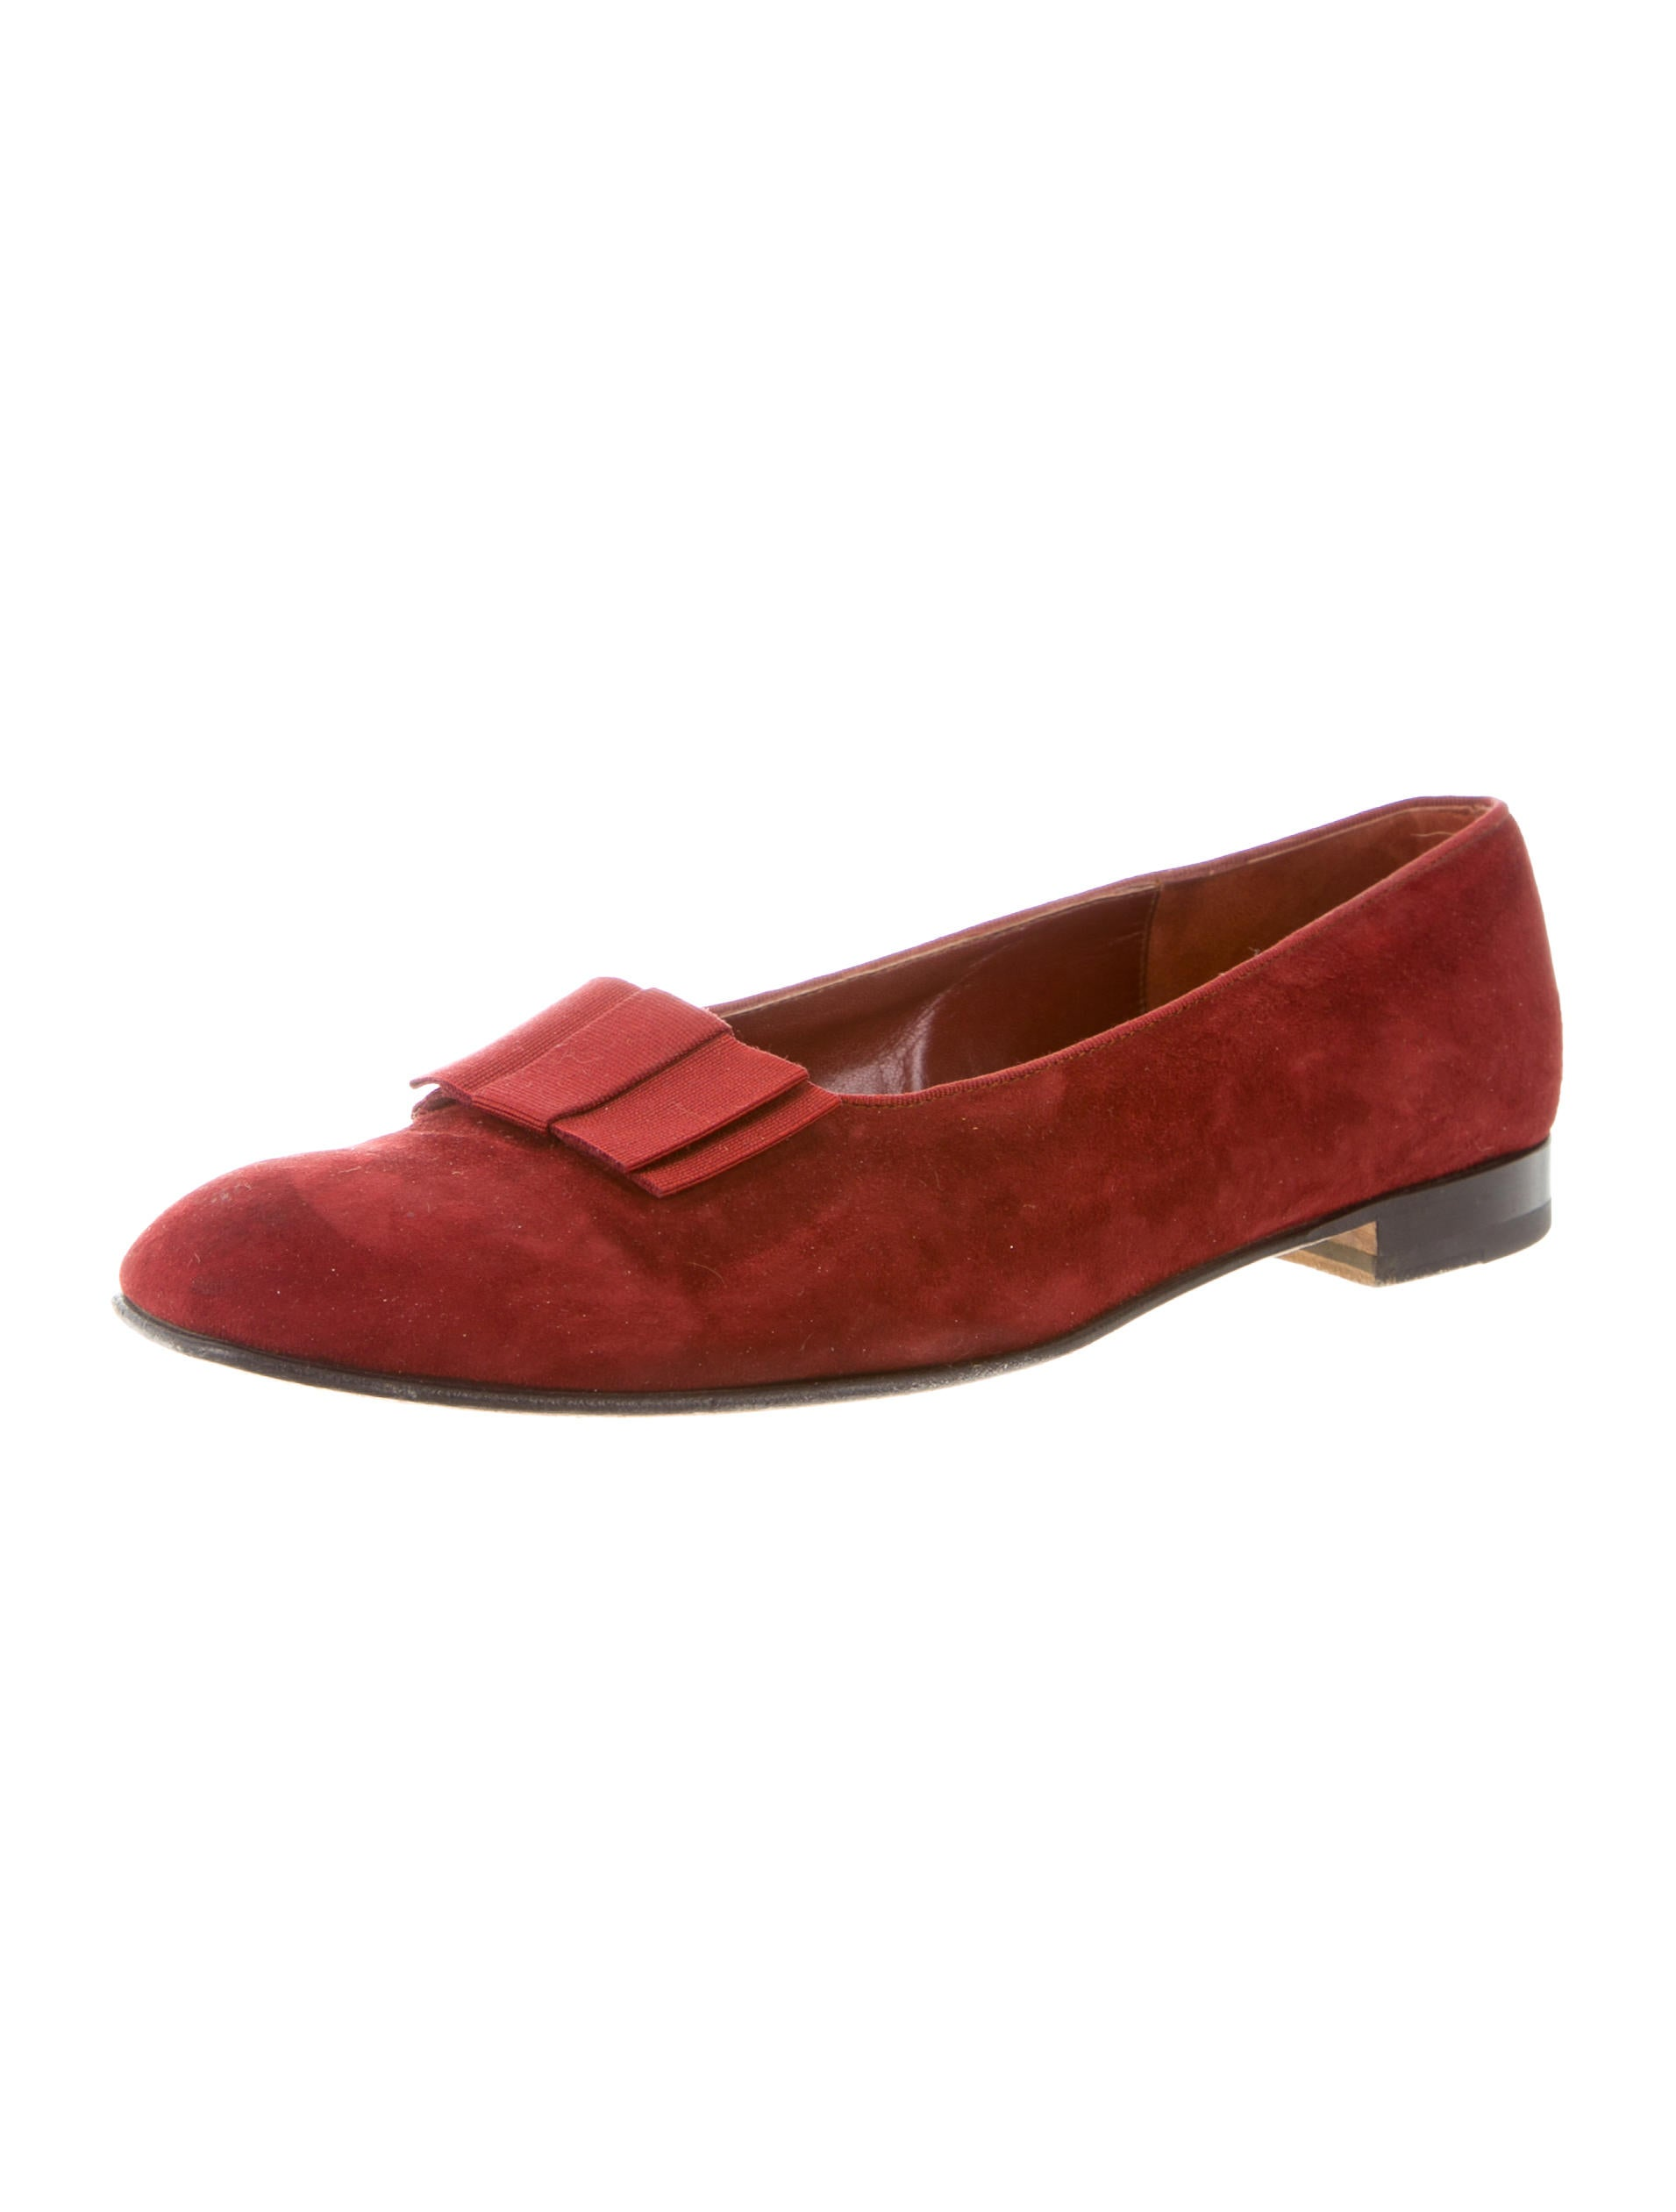 Manolo blahnik suede toro loafers shoes moo46537 the for Shoes by manolo blahnik